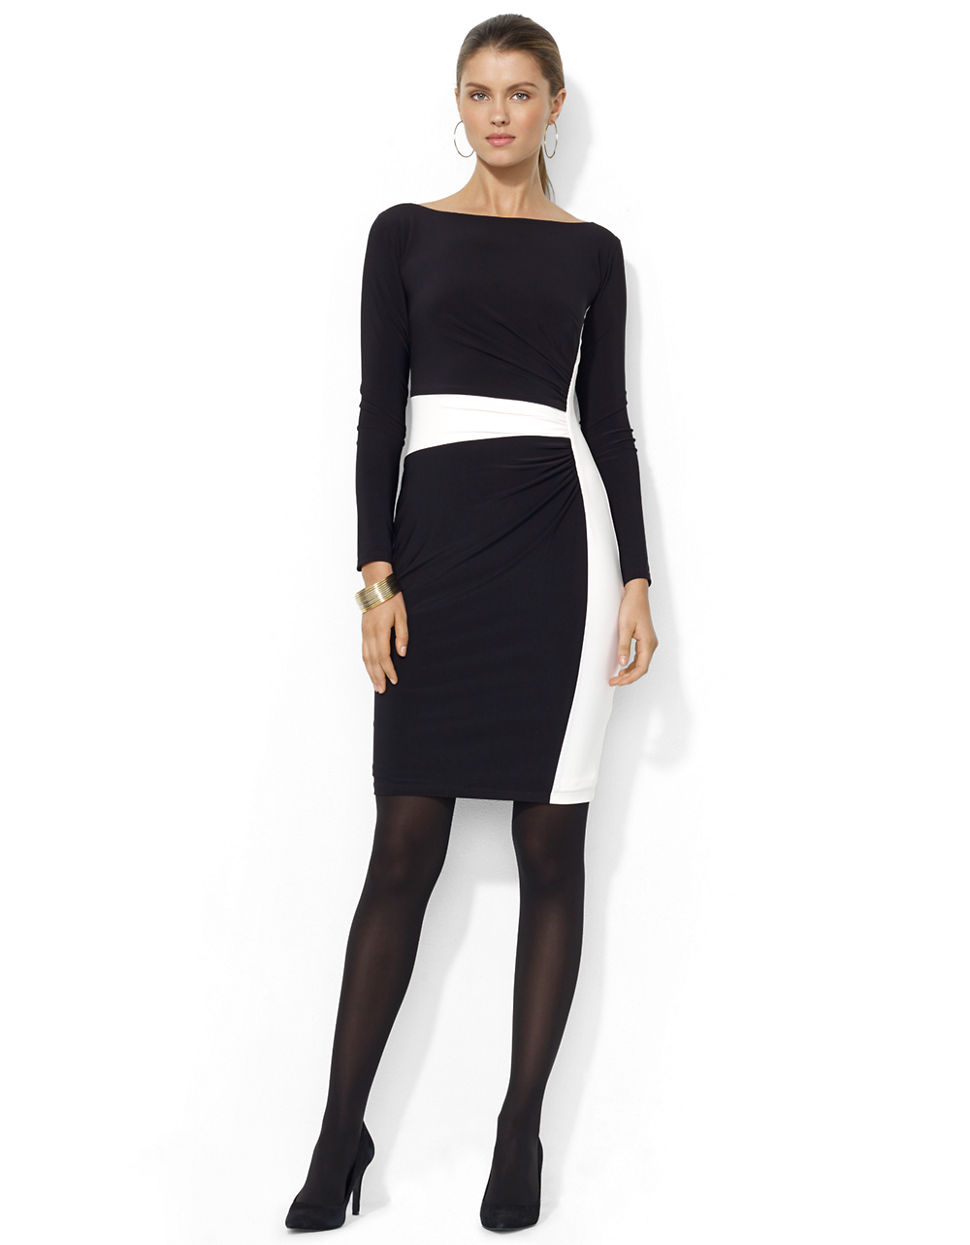 Boat Neck Black Dress